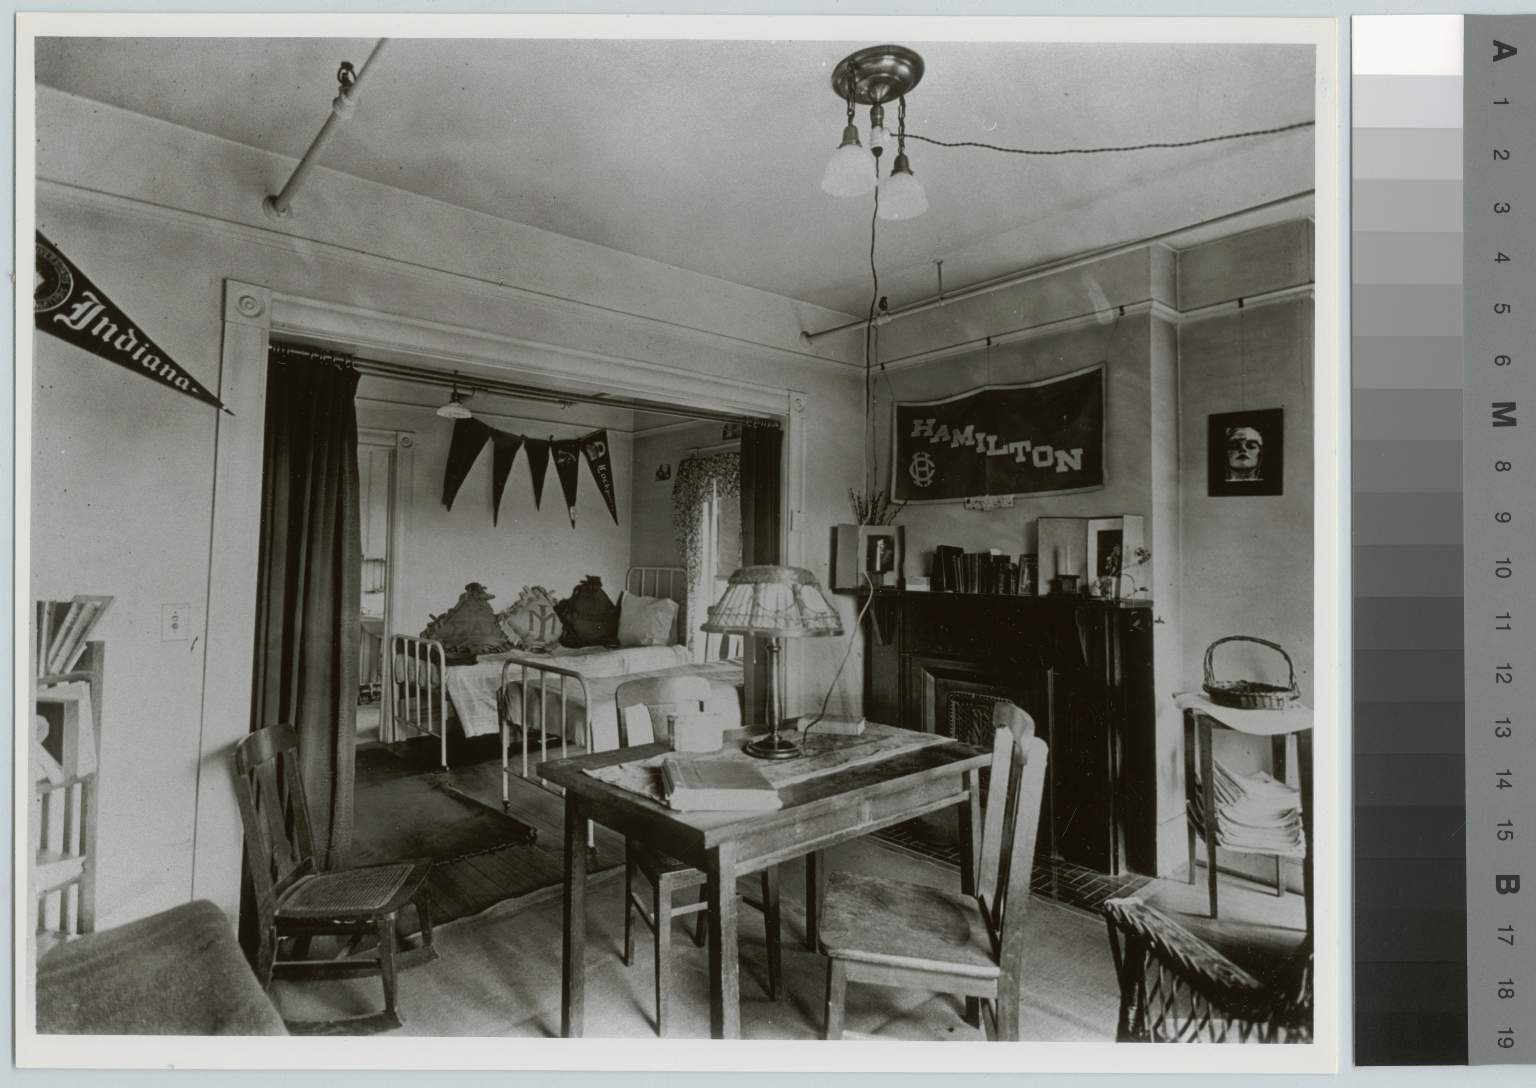 Suite of doritory rooms, Jenkinson Apartments, Rochester Athenaeum and Mechanics Institute